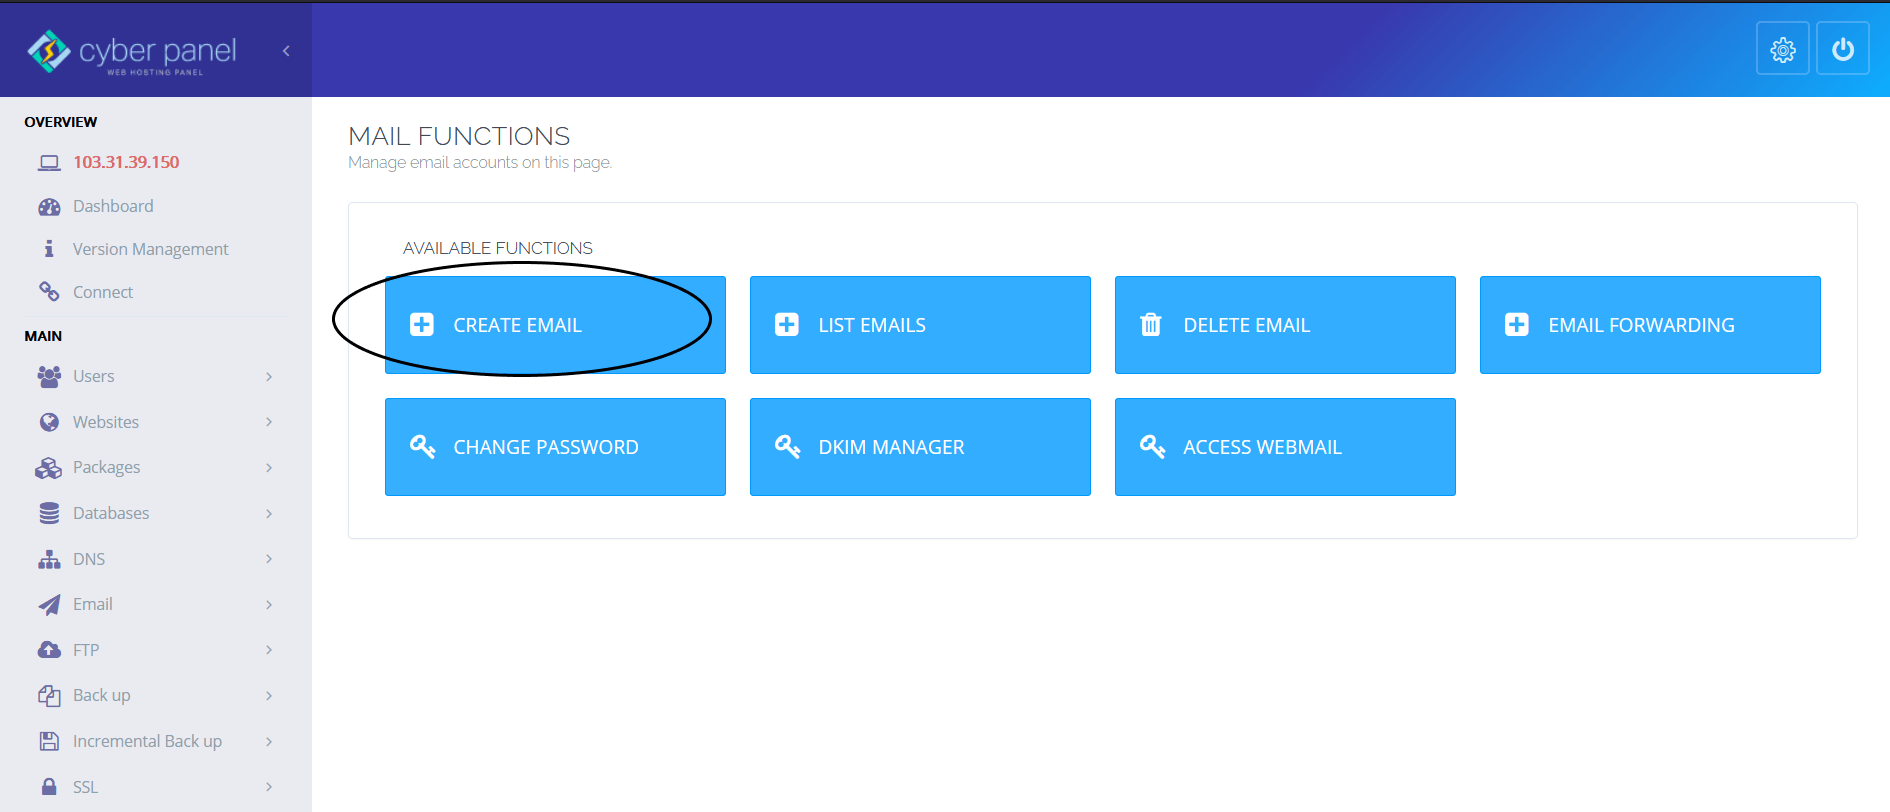 Create Email Cyberpanel